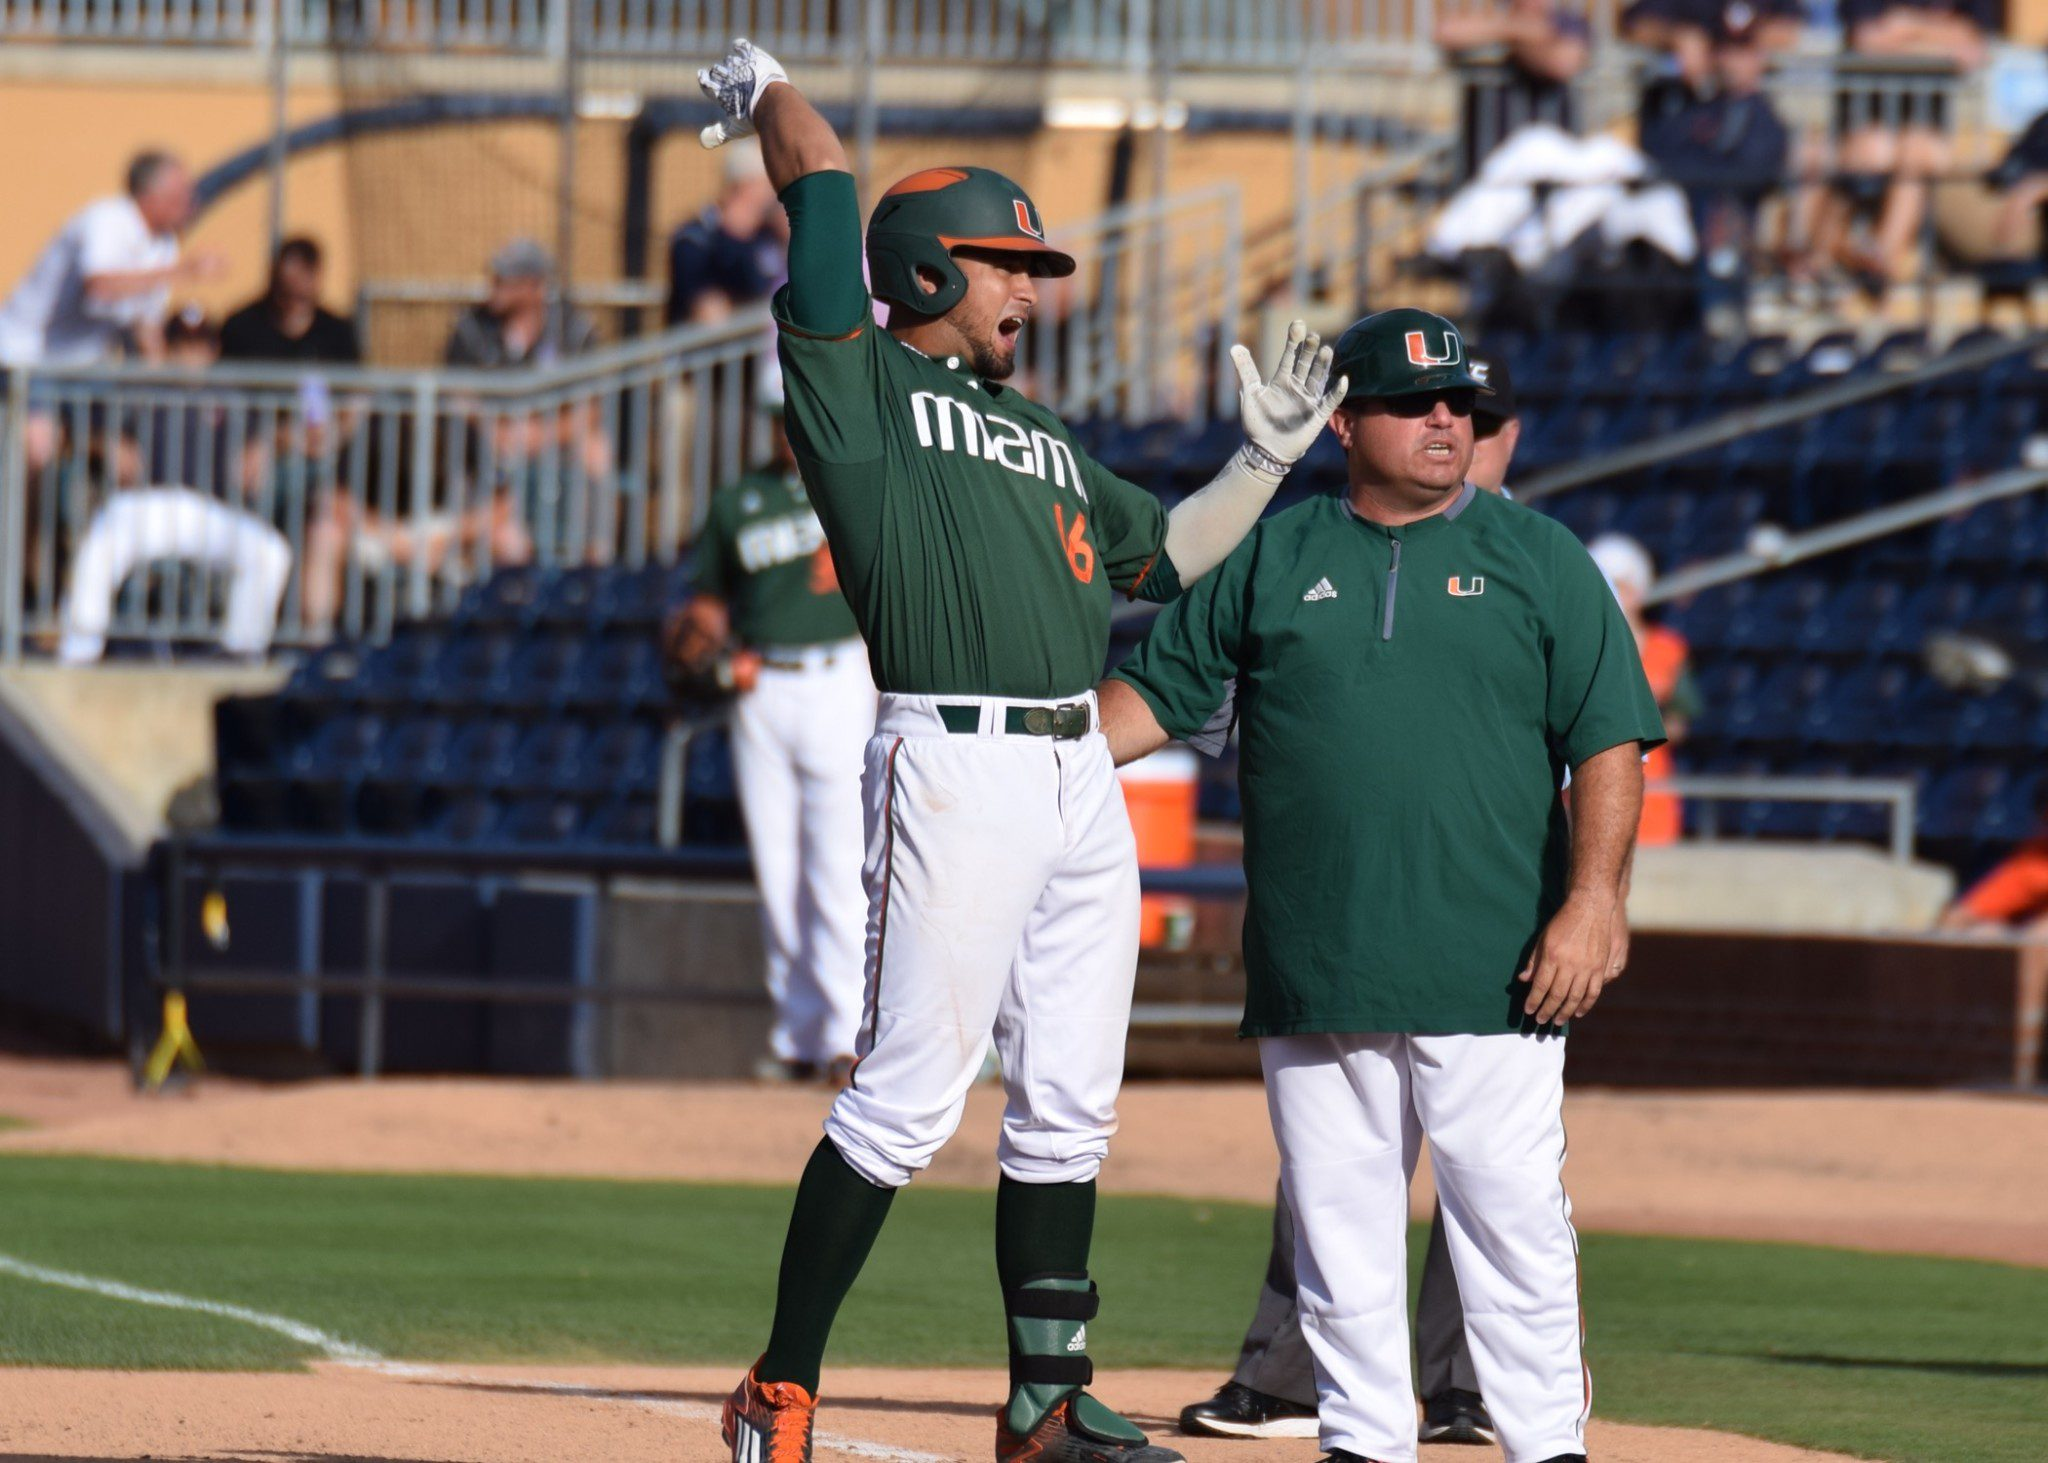 Miami's Edgar Michelangeli rejoices after his game-tying single in the ninth (Aaron Fitt)